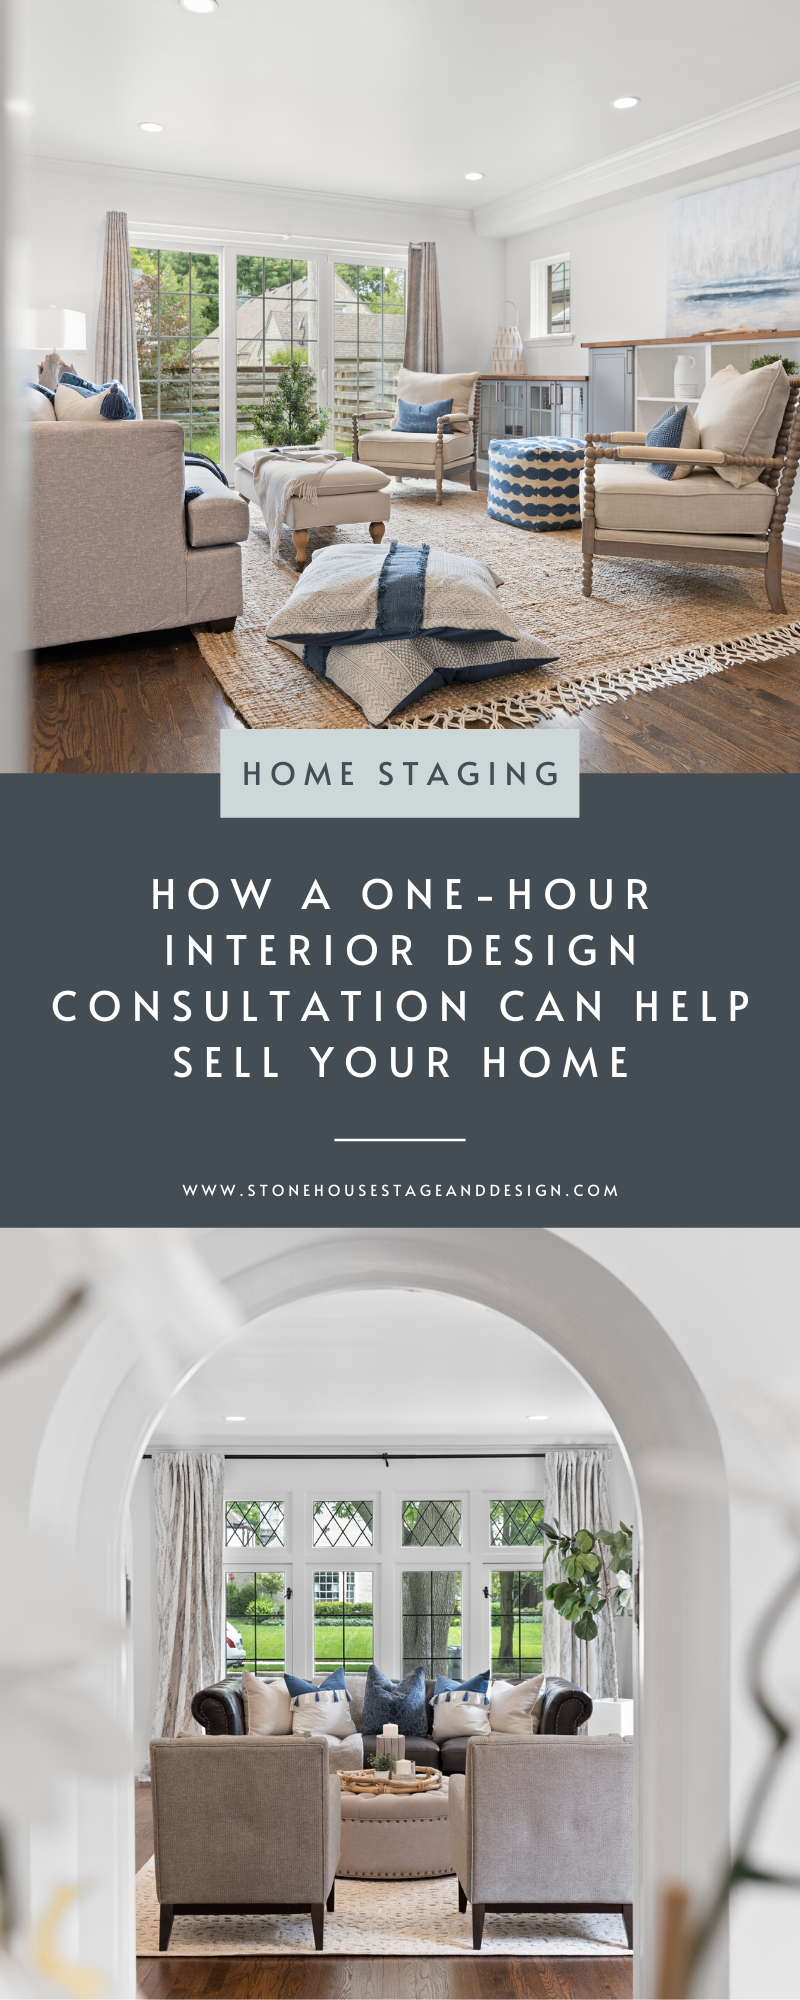 """Will they know what I am looking for?"""" """"I have a vague idea of what I want in my head, but nothing concrete."""" """"How can I best prepare my home to go on the market?"""""""